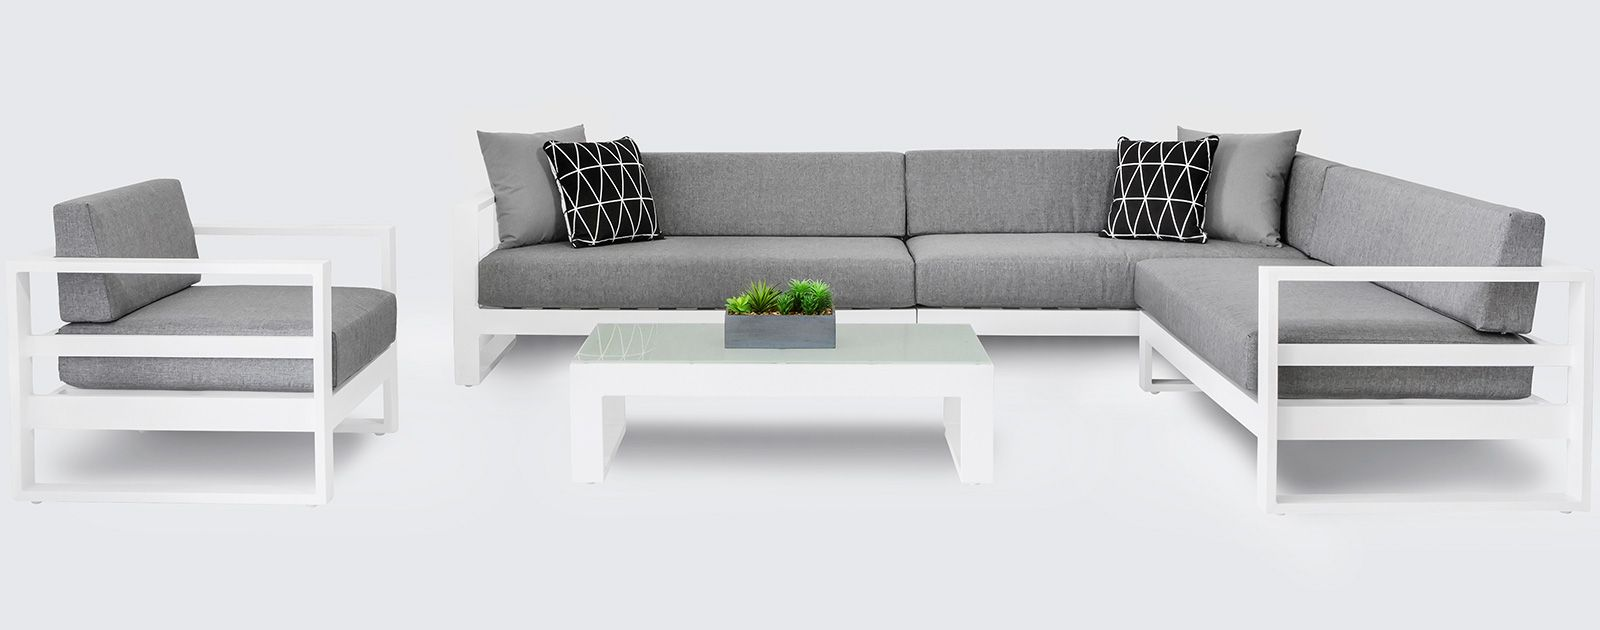 Outdoor Sofa Nz Outdoor Sofa Furniture Design Concepts Couch